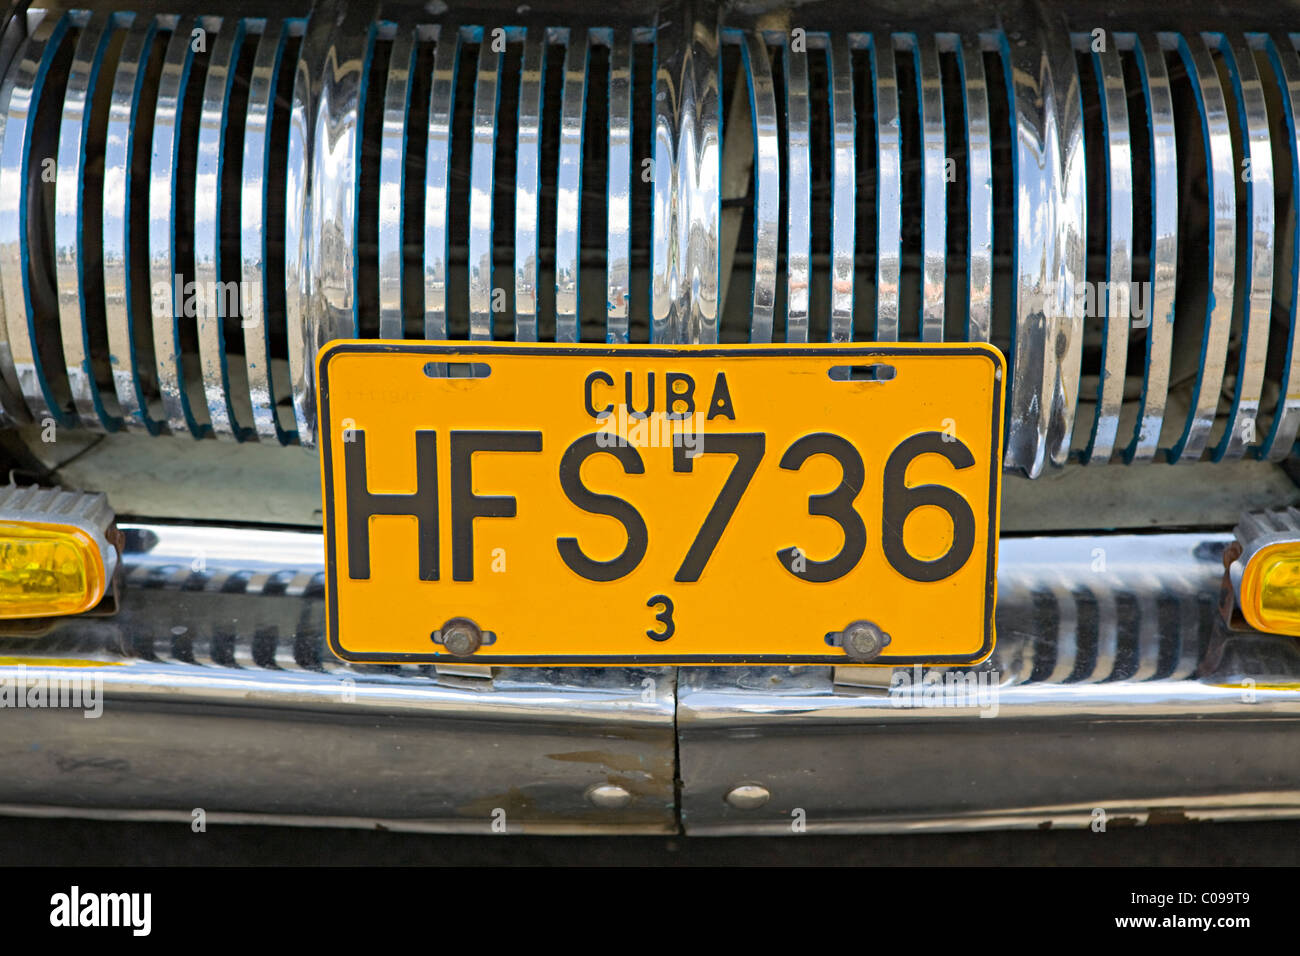 Close up of a number registration plate in Havana Cuba on a 1950's automobile showing chrome grill - Stock Image